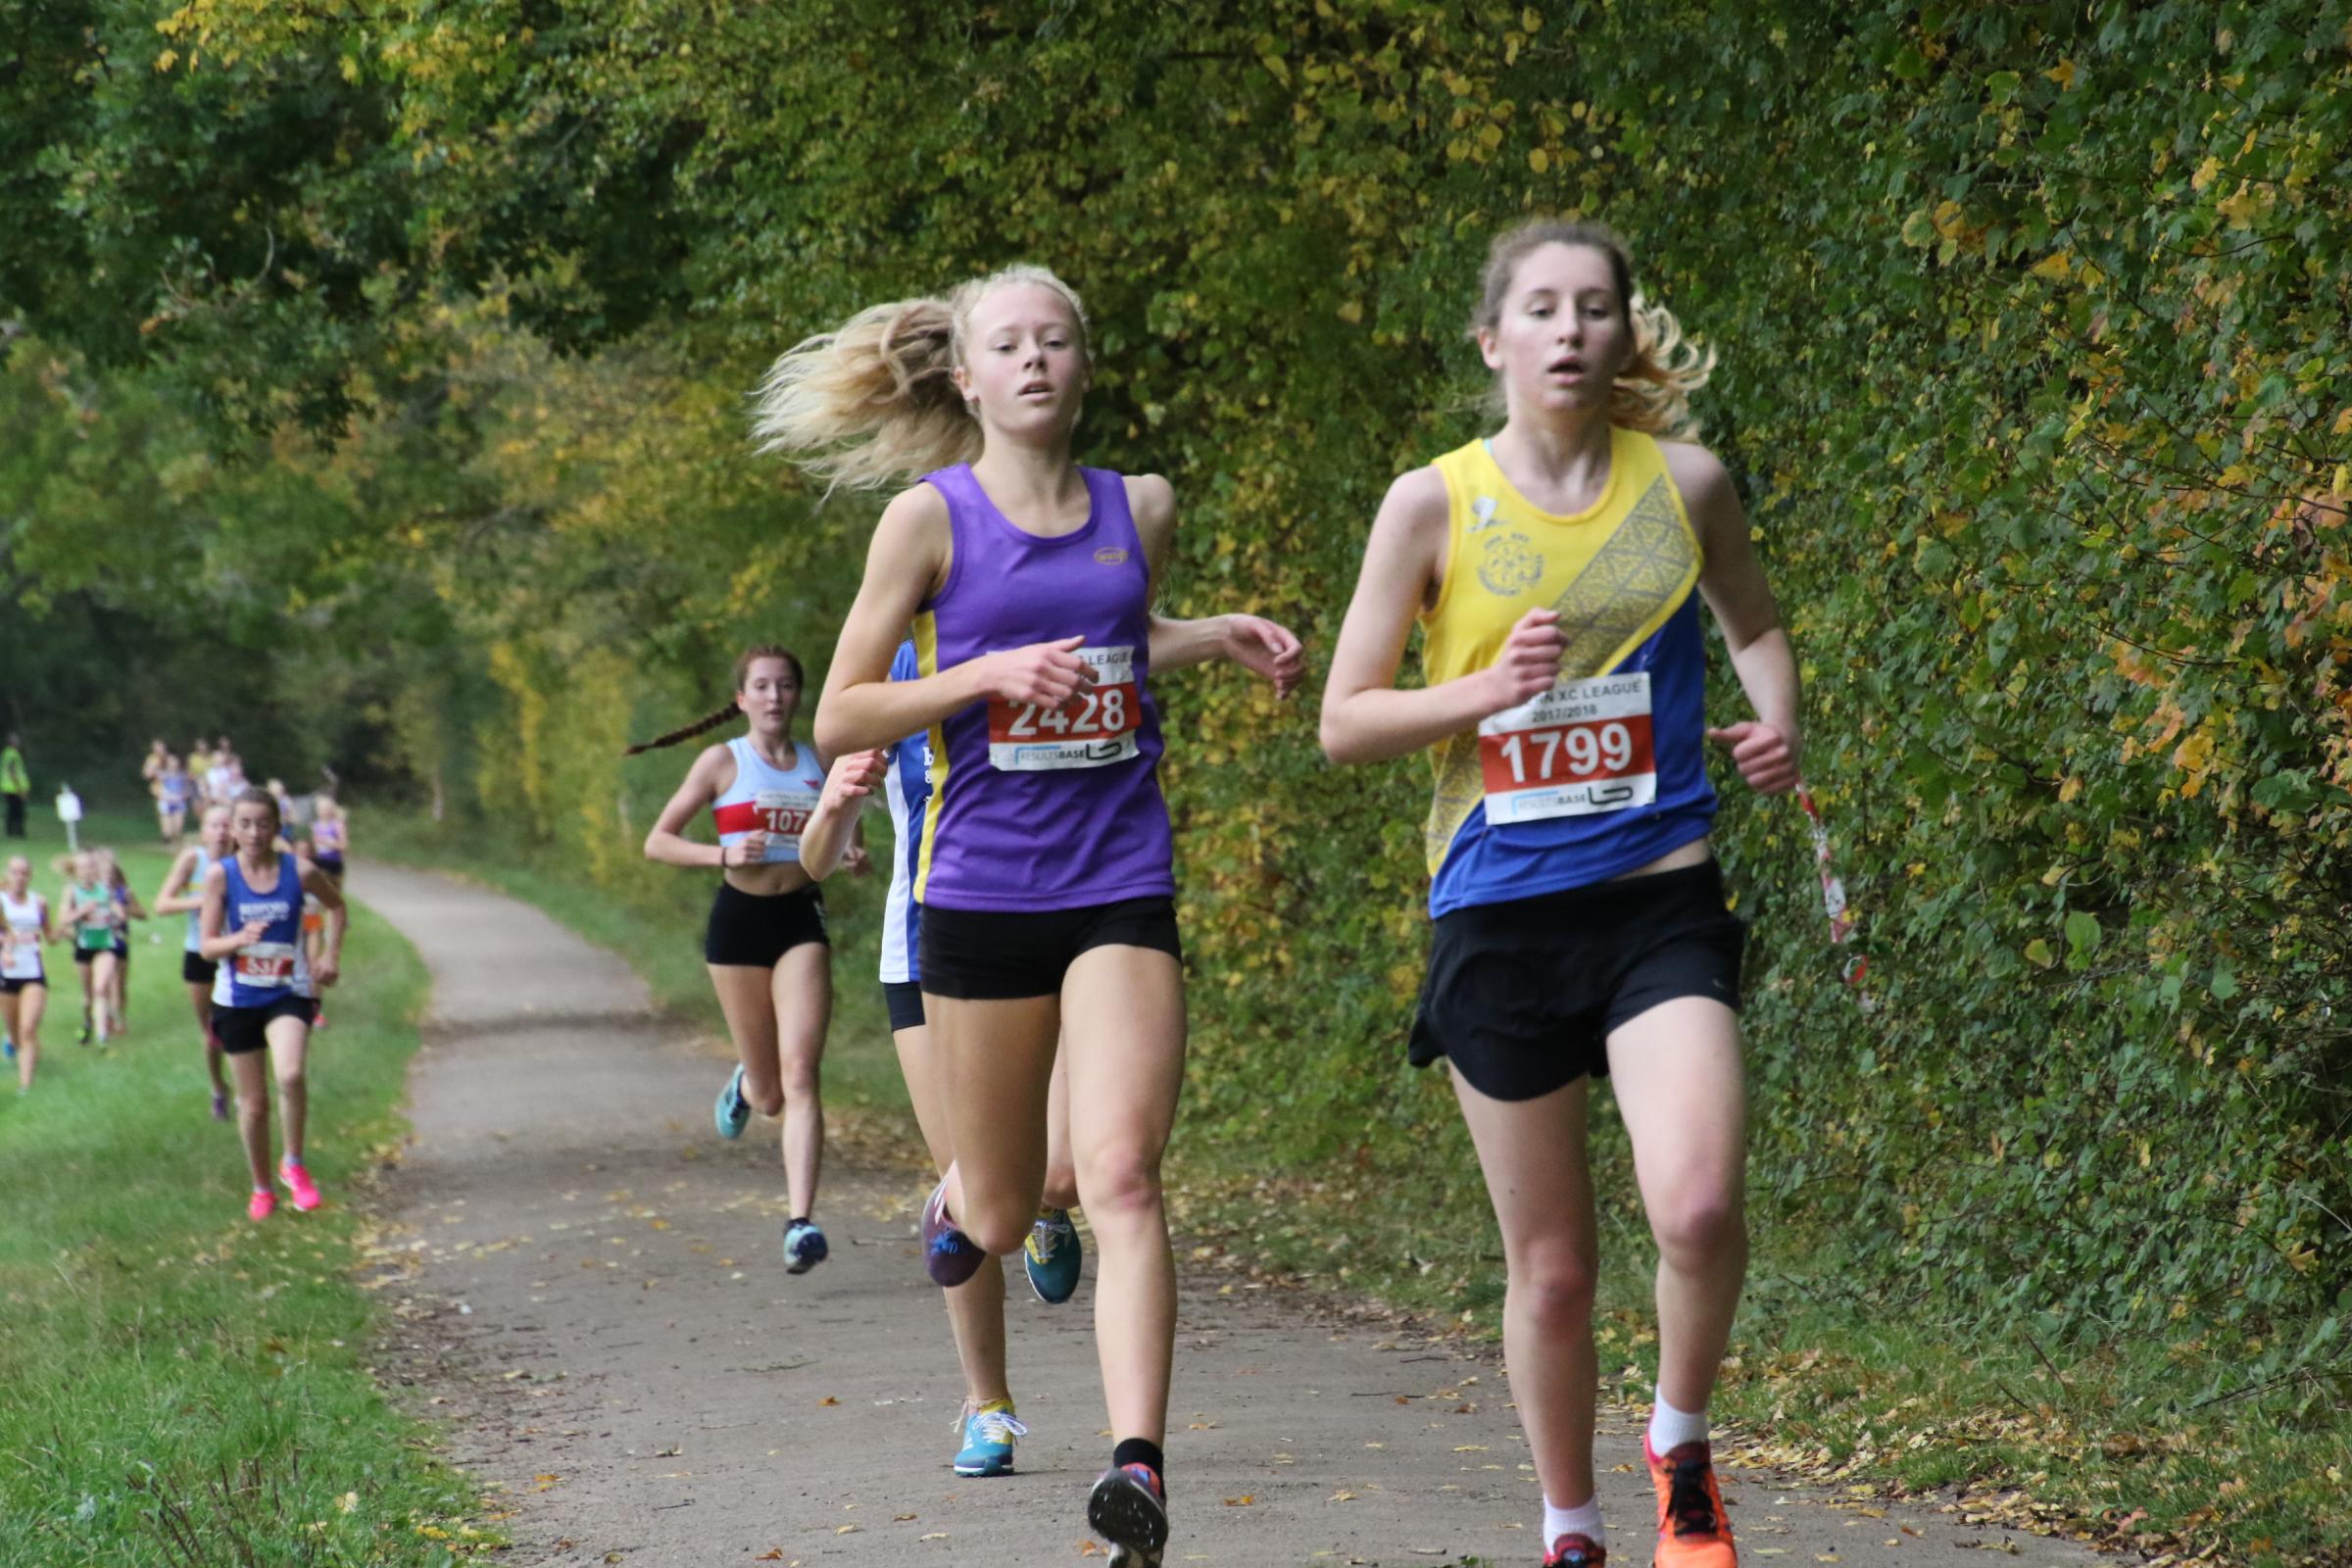 Radley's Rachel Burton (left) on her way to finishing third in the under 17 race in the first round of the Chiltern League Picture: Barry Cornelius